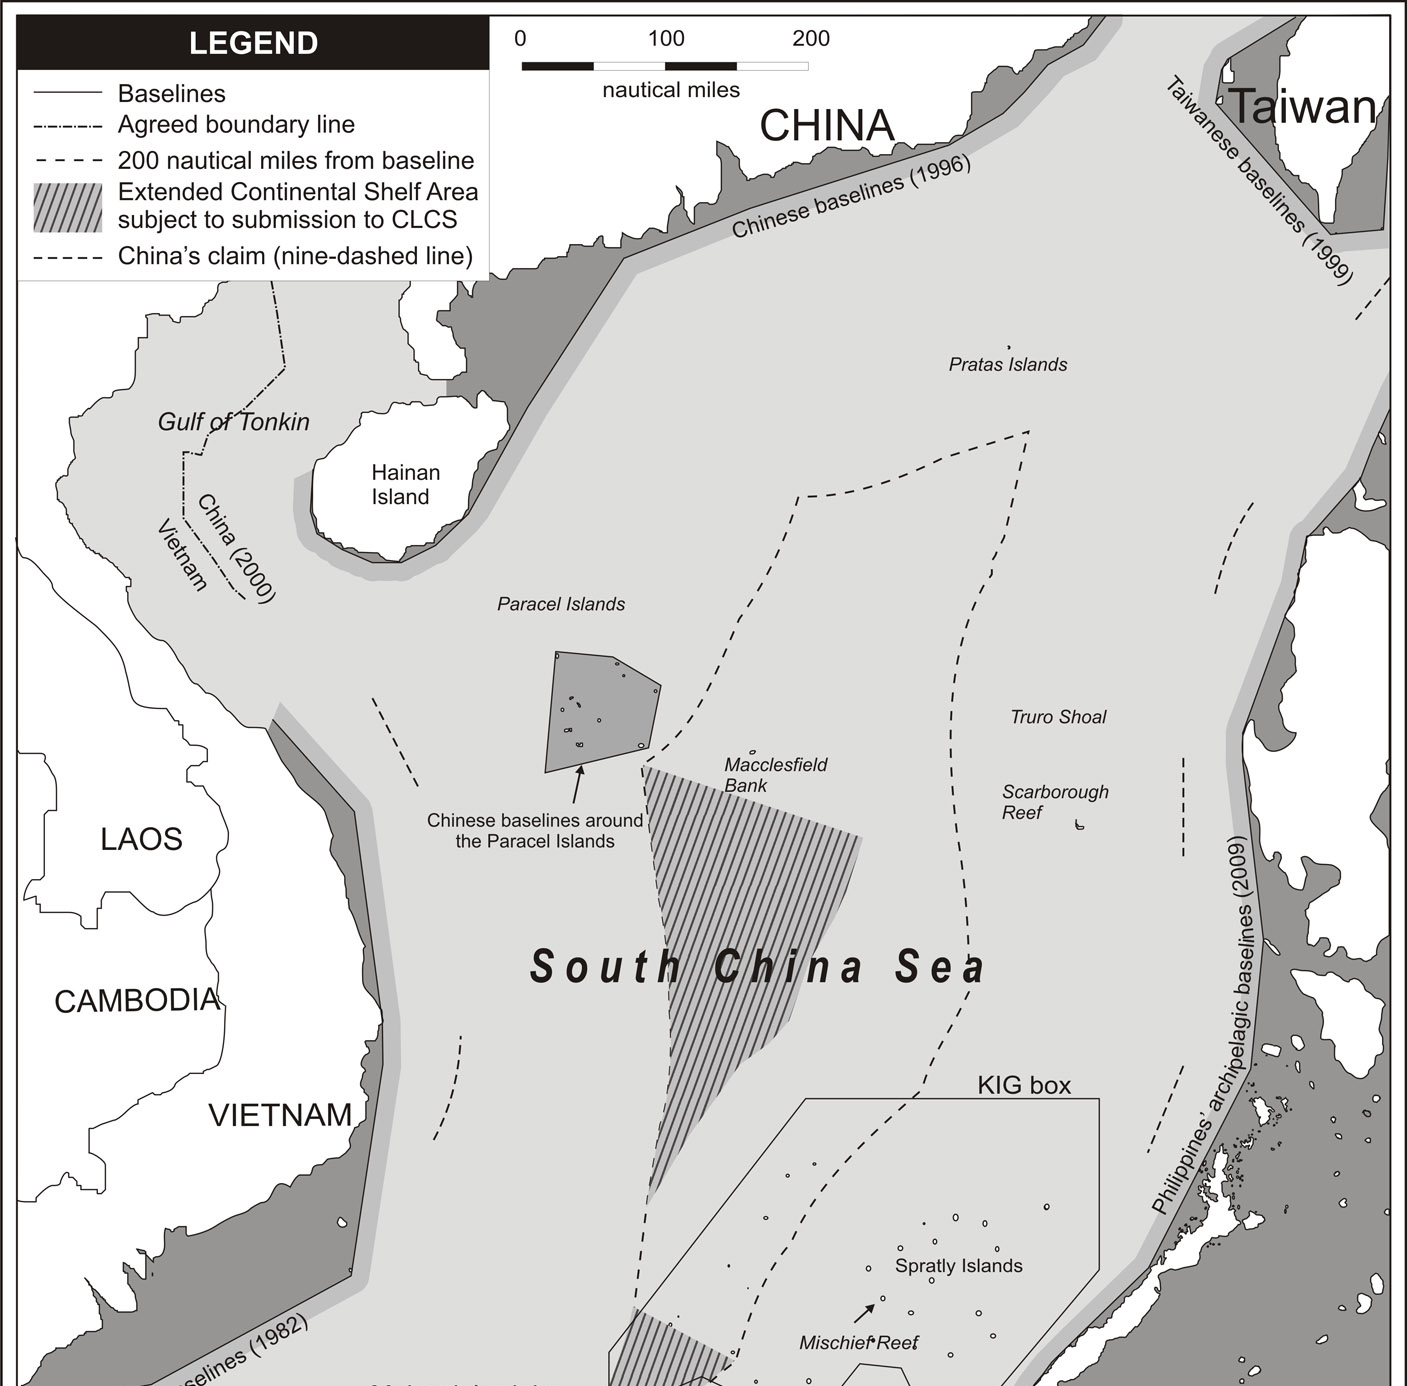 Stirring up the South China Sea (I) Crisis Group Asia Report N 223, 23 April 2012 Page 38